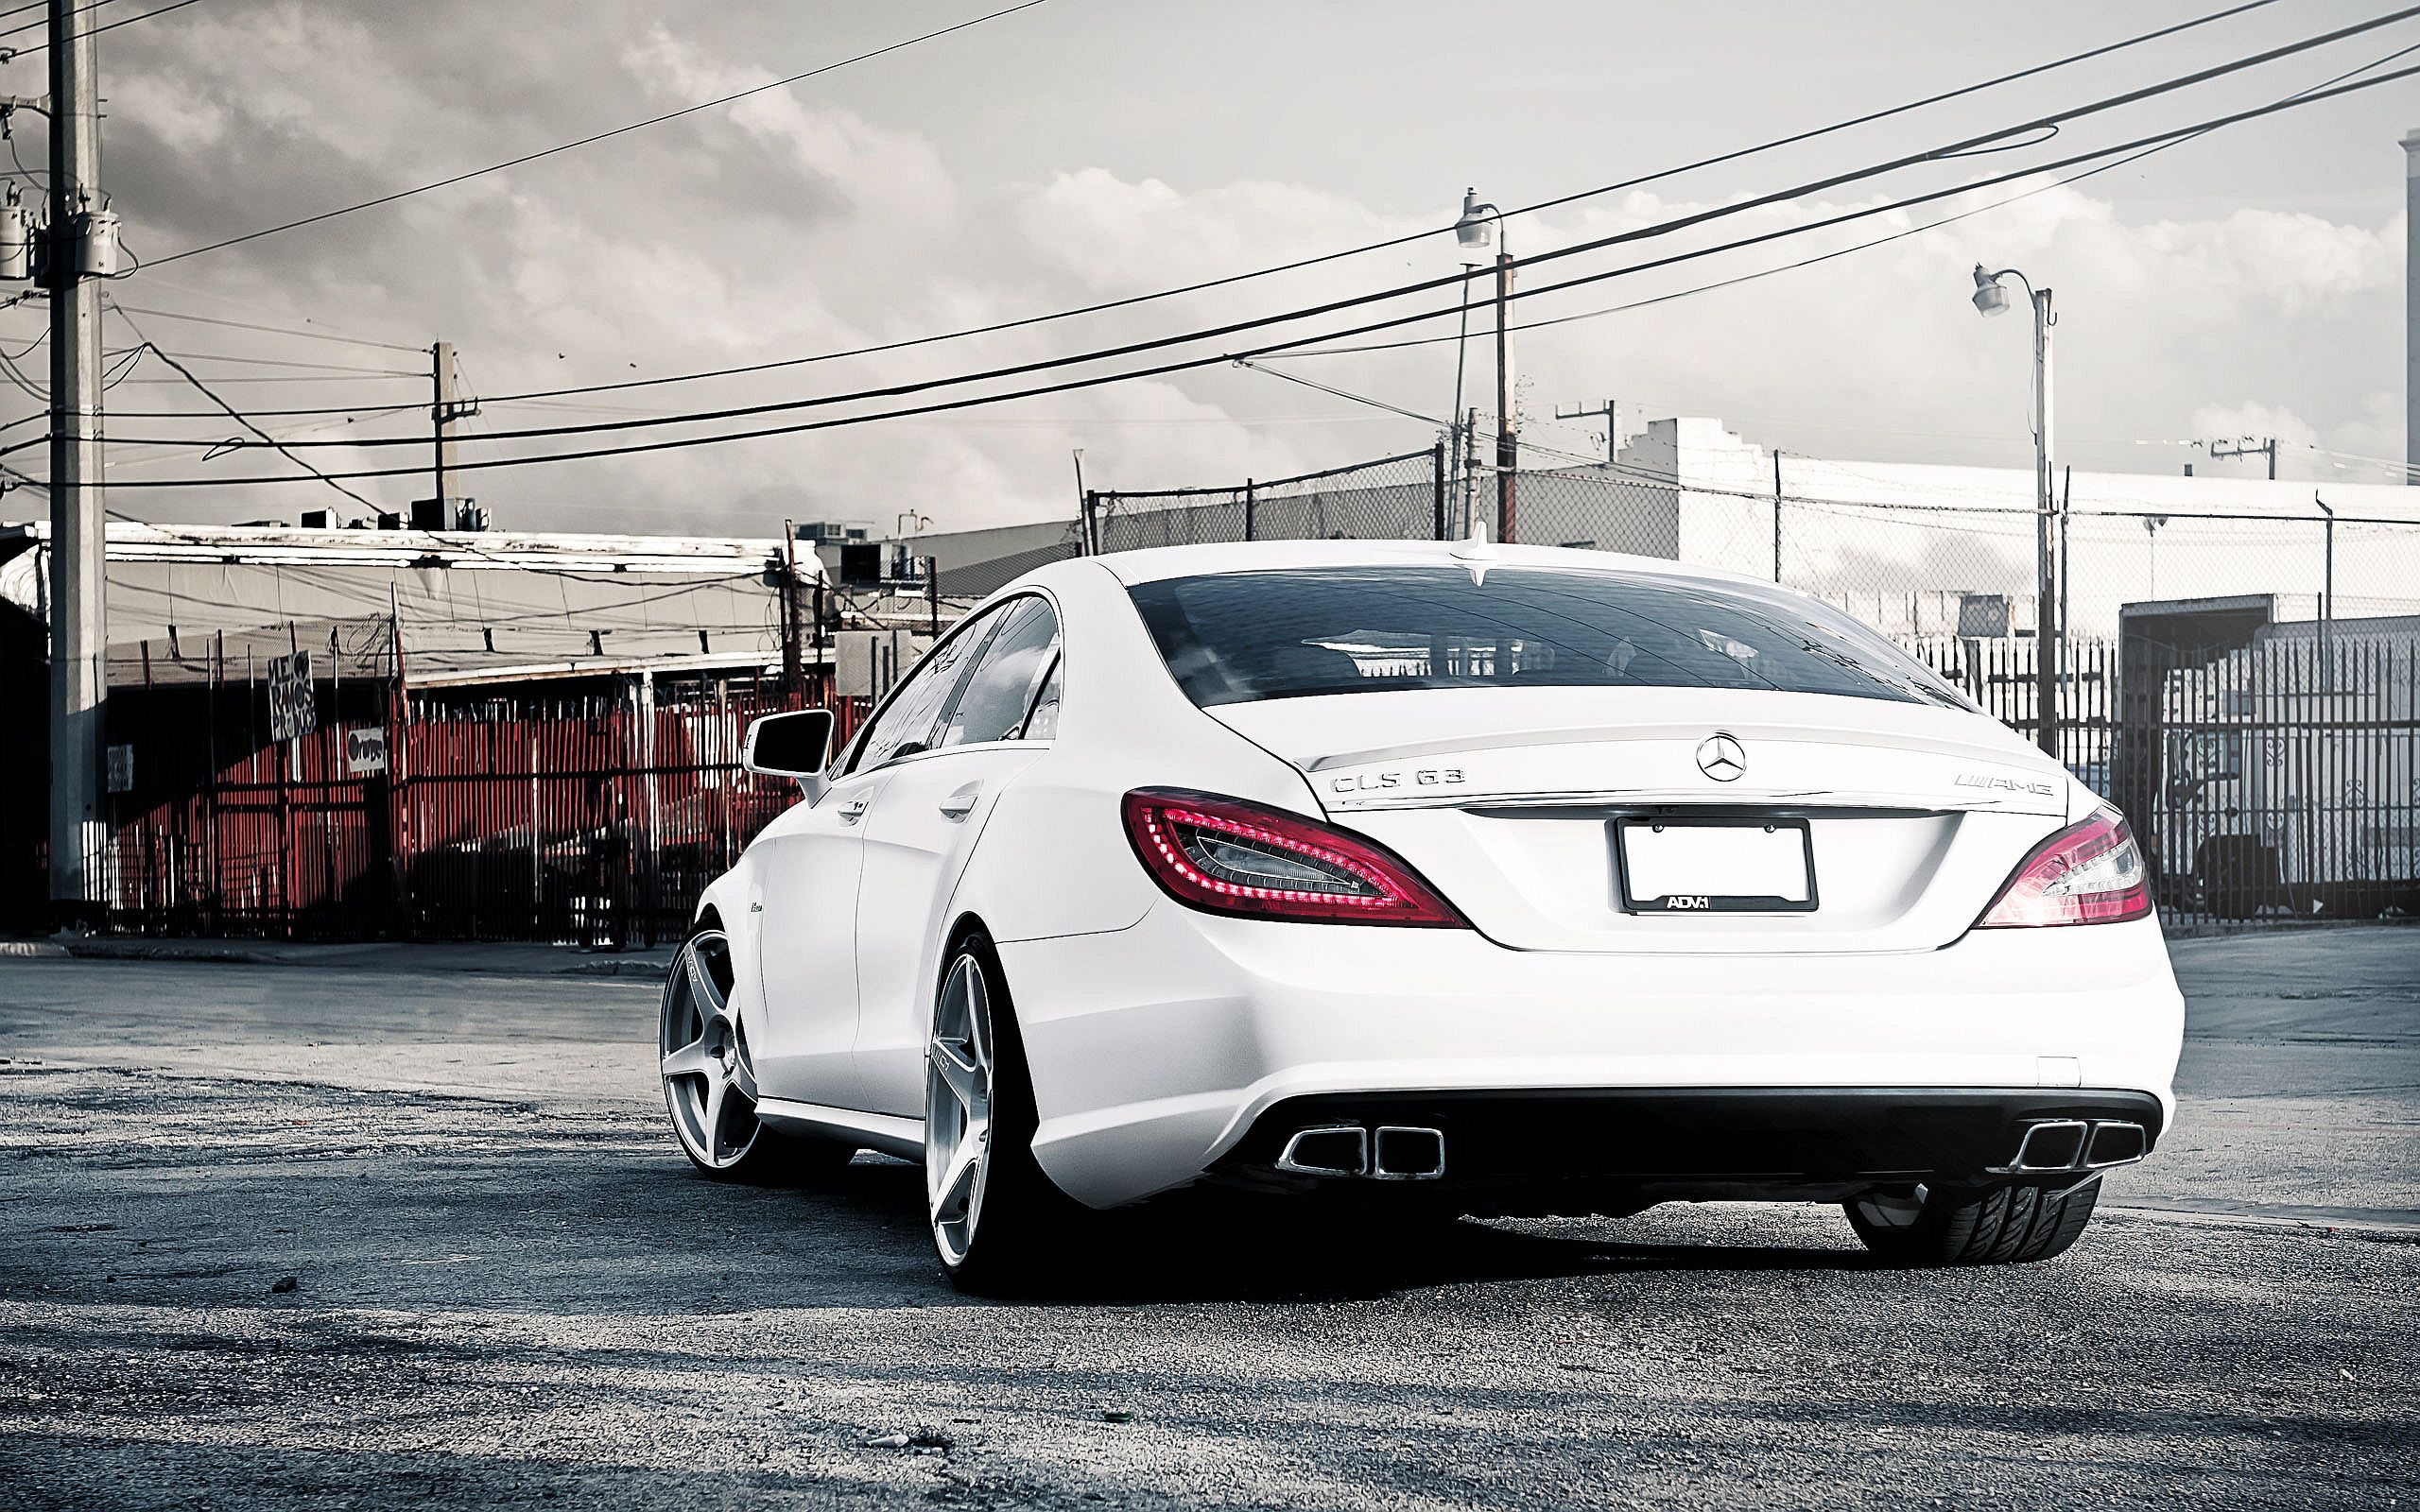 Mercedes Benz CLS 63 AMG Cars Pinterest